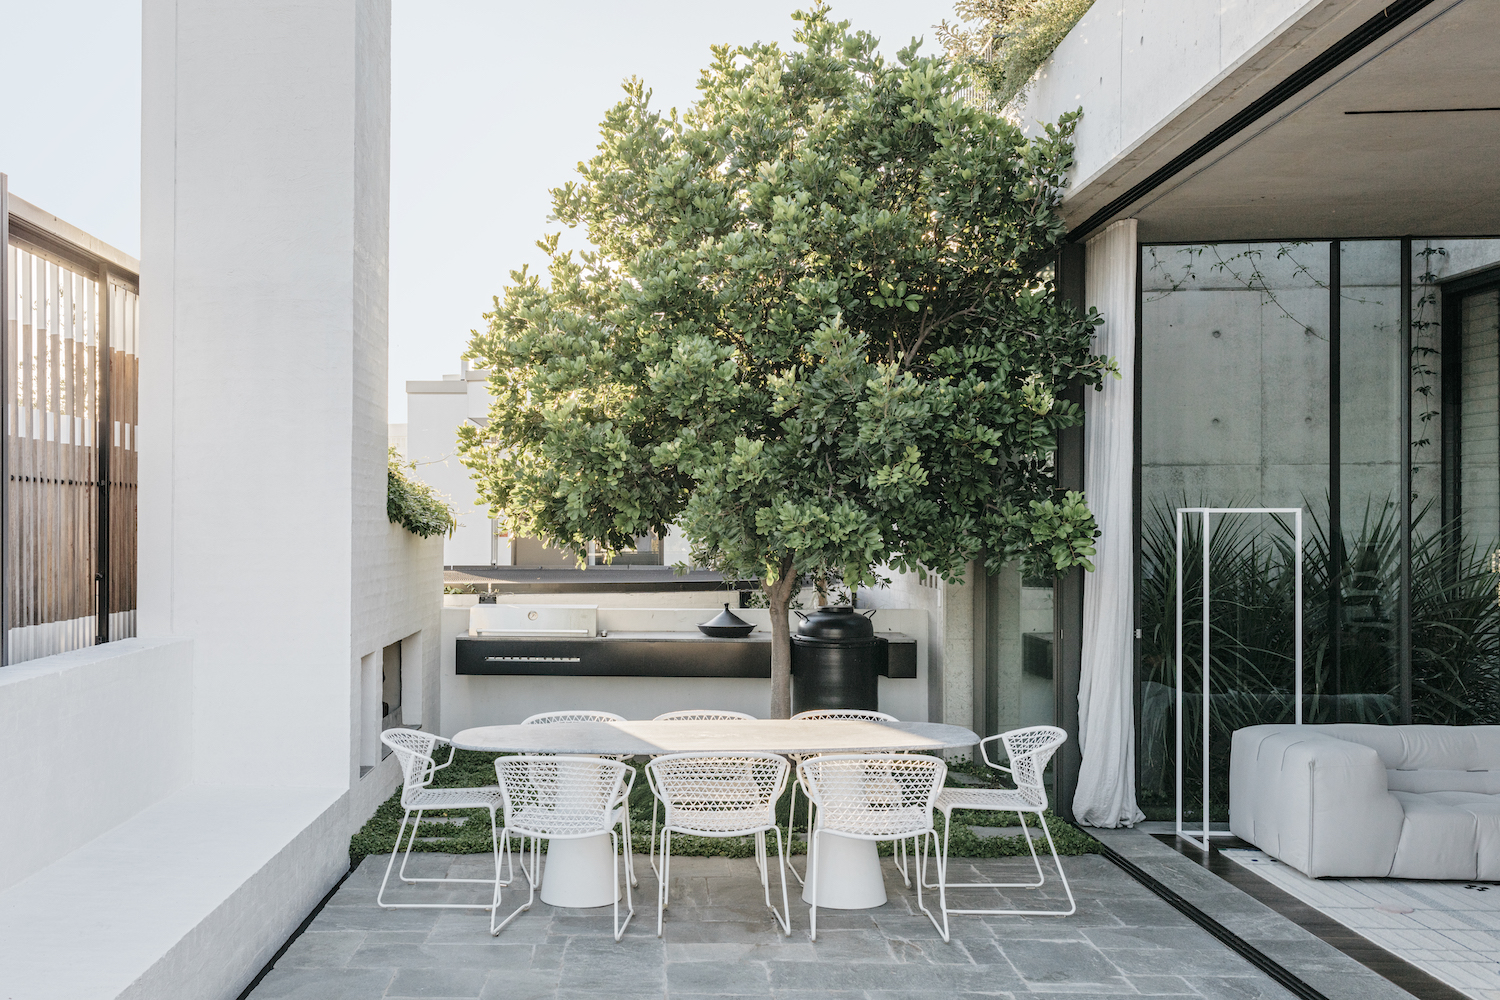 A rooftop oasis that seamlessly transitions from the interior space